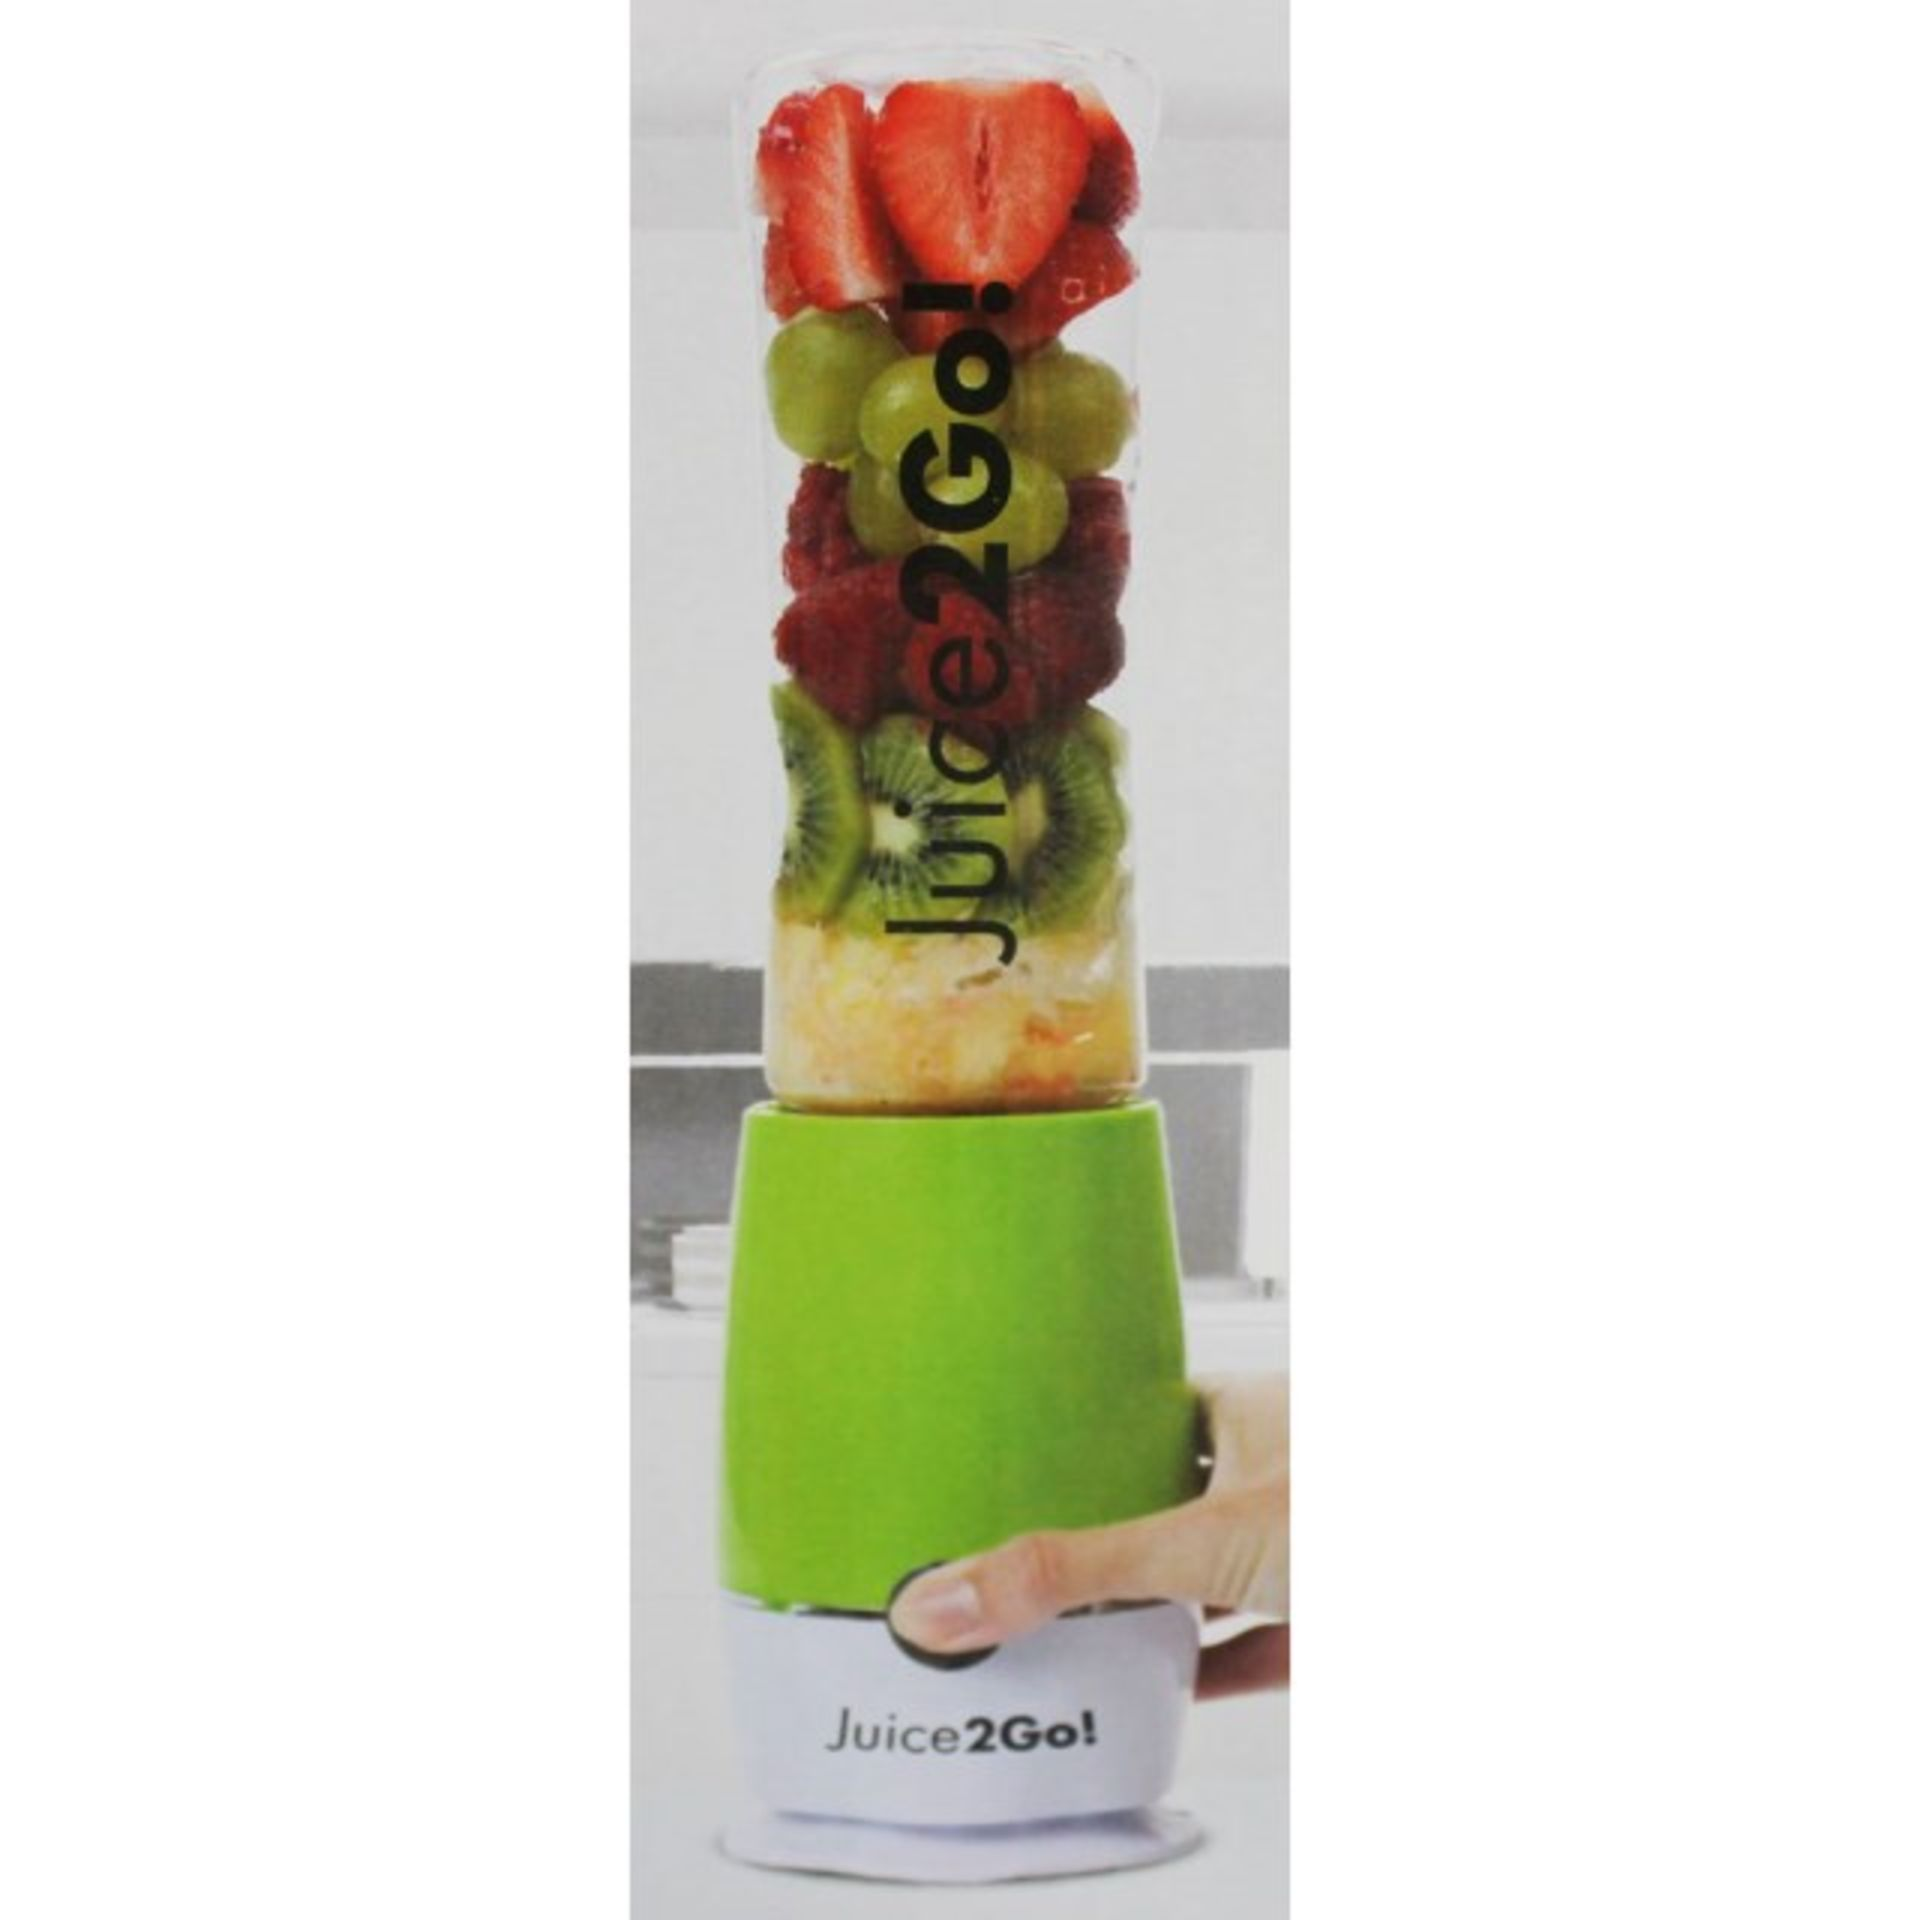 Lot 10010 - V Brand New Juice To Go! Electric Juicer With Sports Bottle - Wide Spout - Dishwasher Safe - Ice